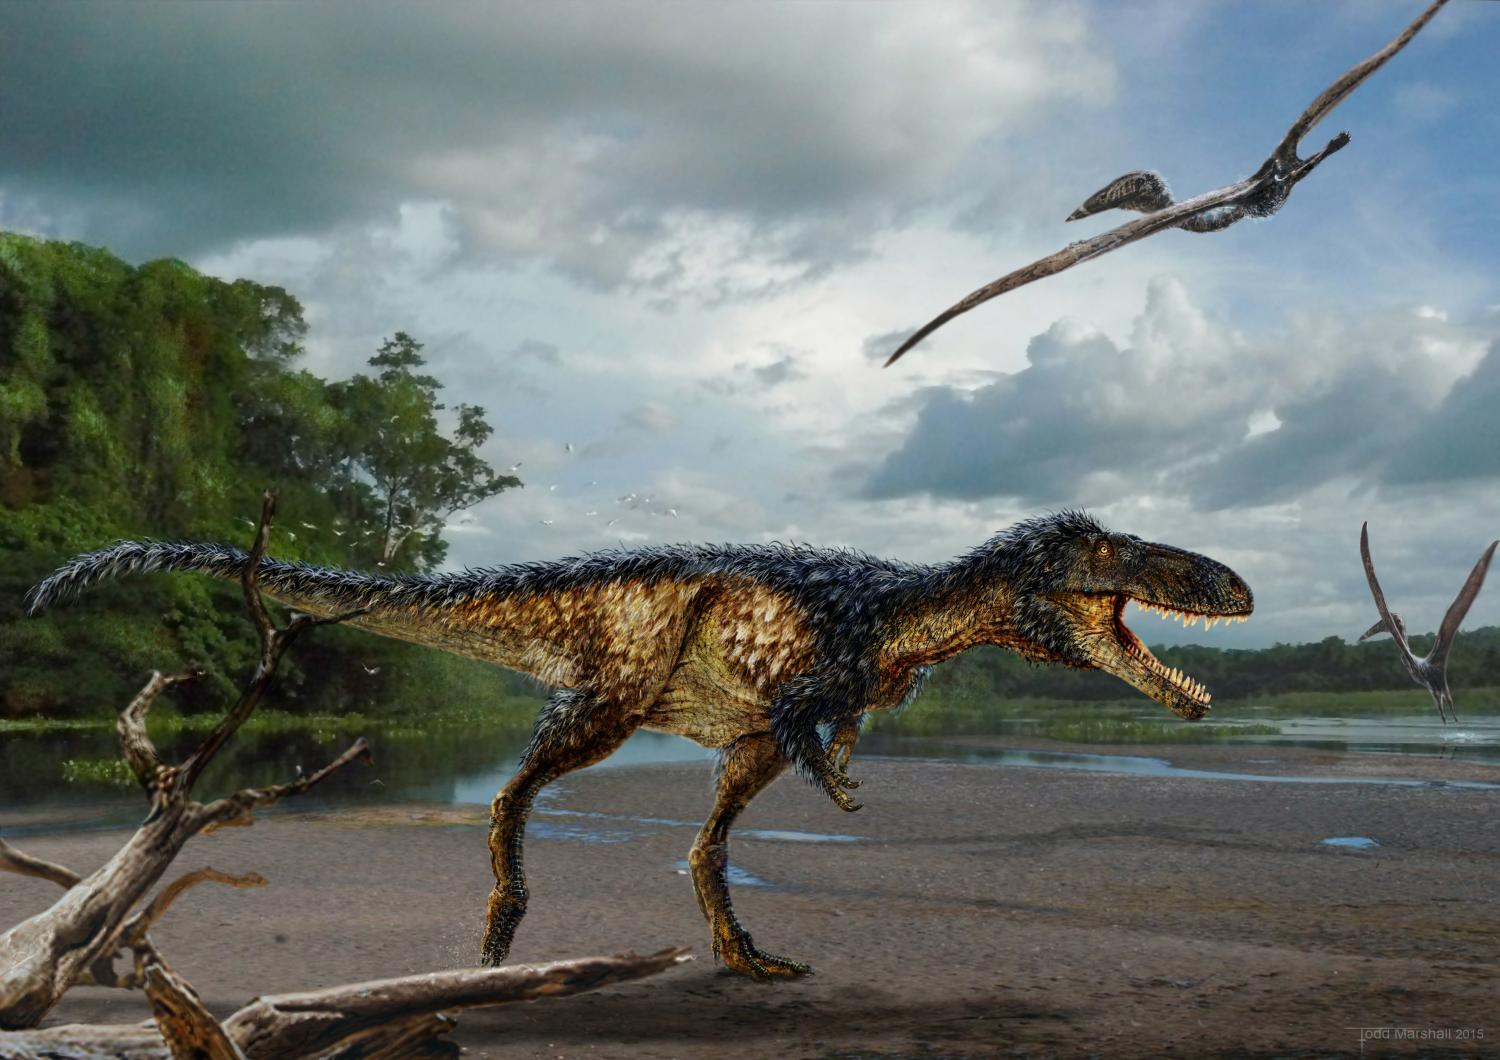 The Presence Of Feathers Alone Is Not Enough Evidence To Conclude That Birds Evolved From Dinosaurs However Some Distinct Skeletal Characteristics Suggest